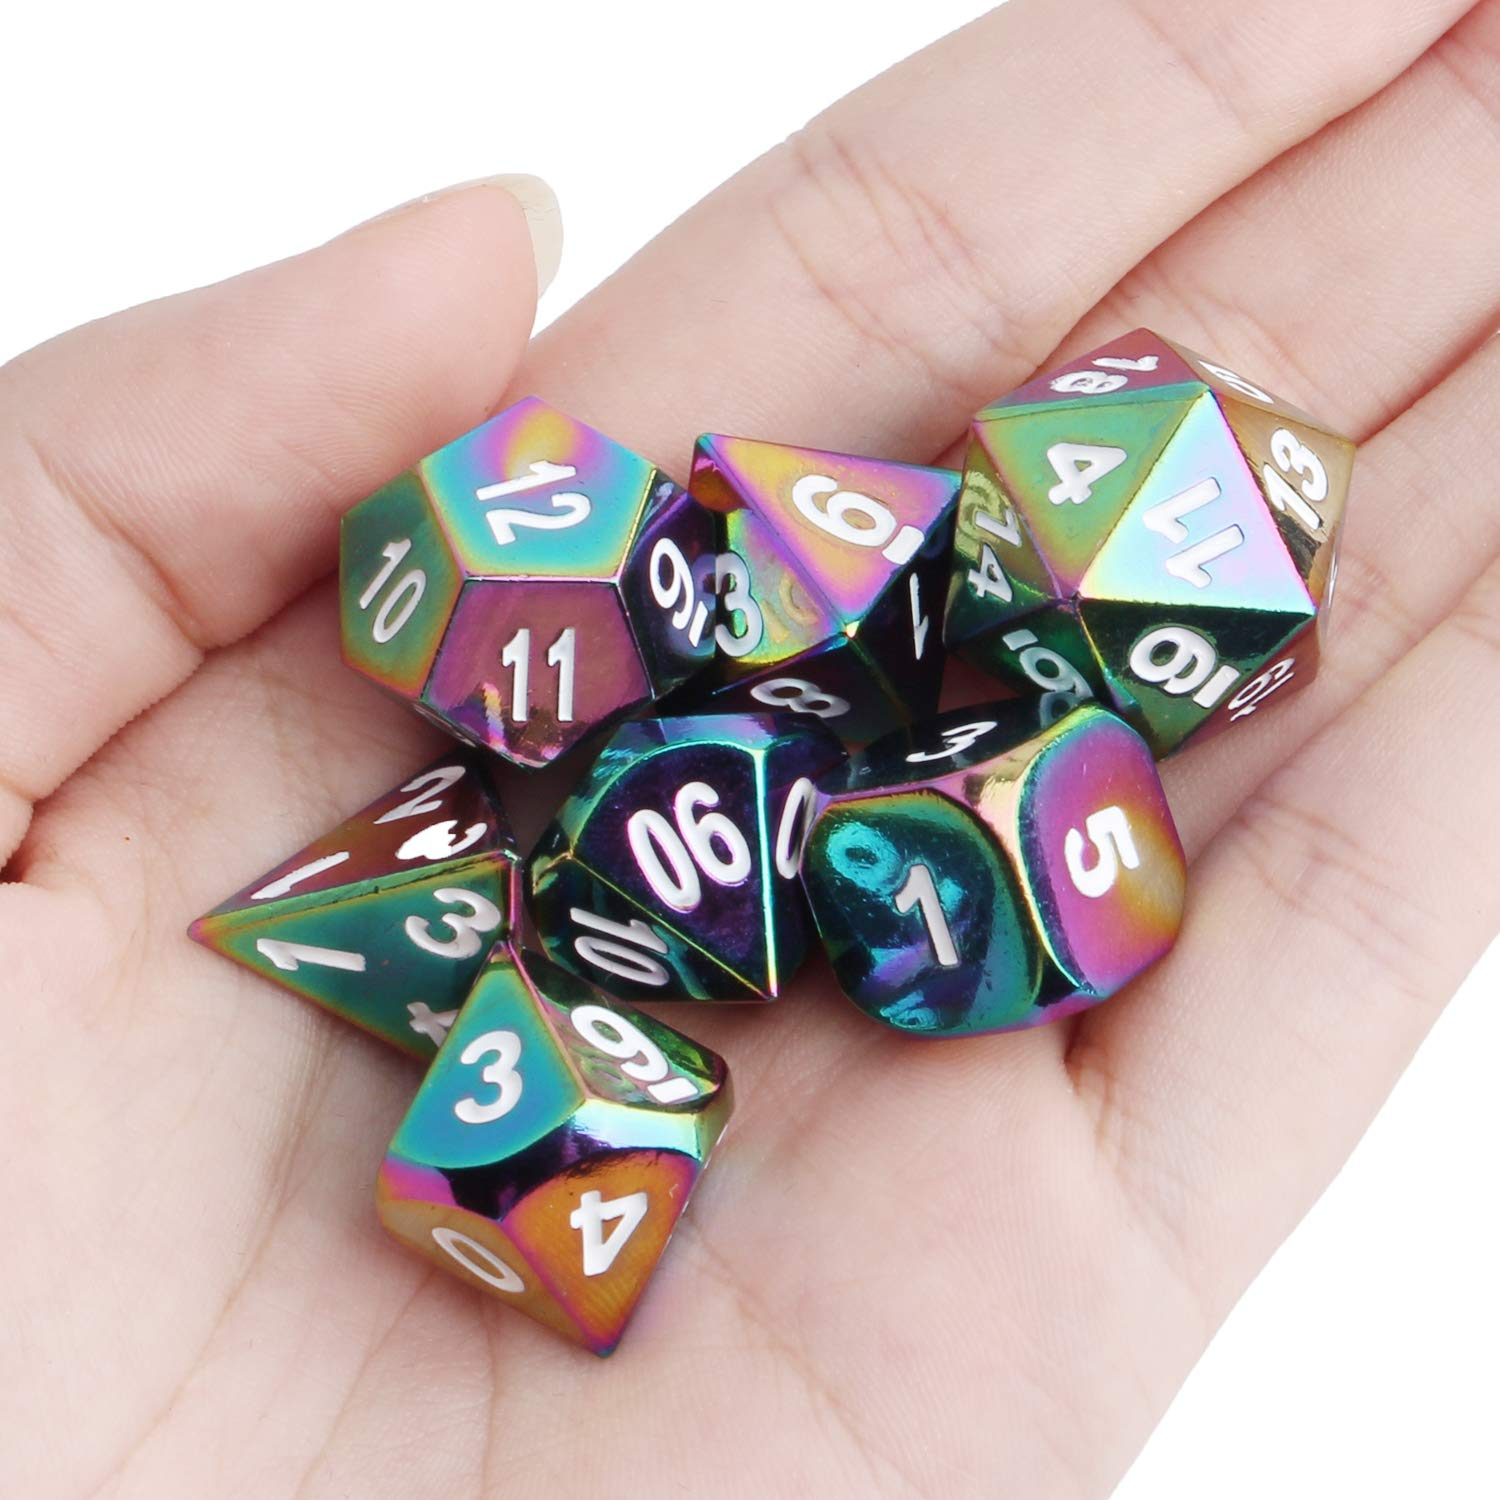 Outee 7 Pcs Metal Dice Set Solid Polyhedral Metal Dice Dnd Game Dice Rainbow D4 D6 D8 D10 D12 D20 Dungeons Dragons DND RPG MTG Table Games Math Teaching with Drawstring Pouch